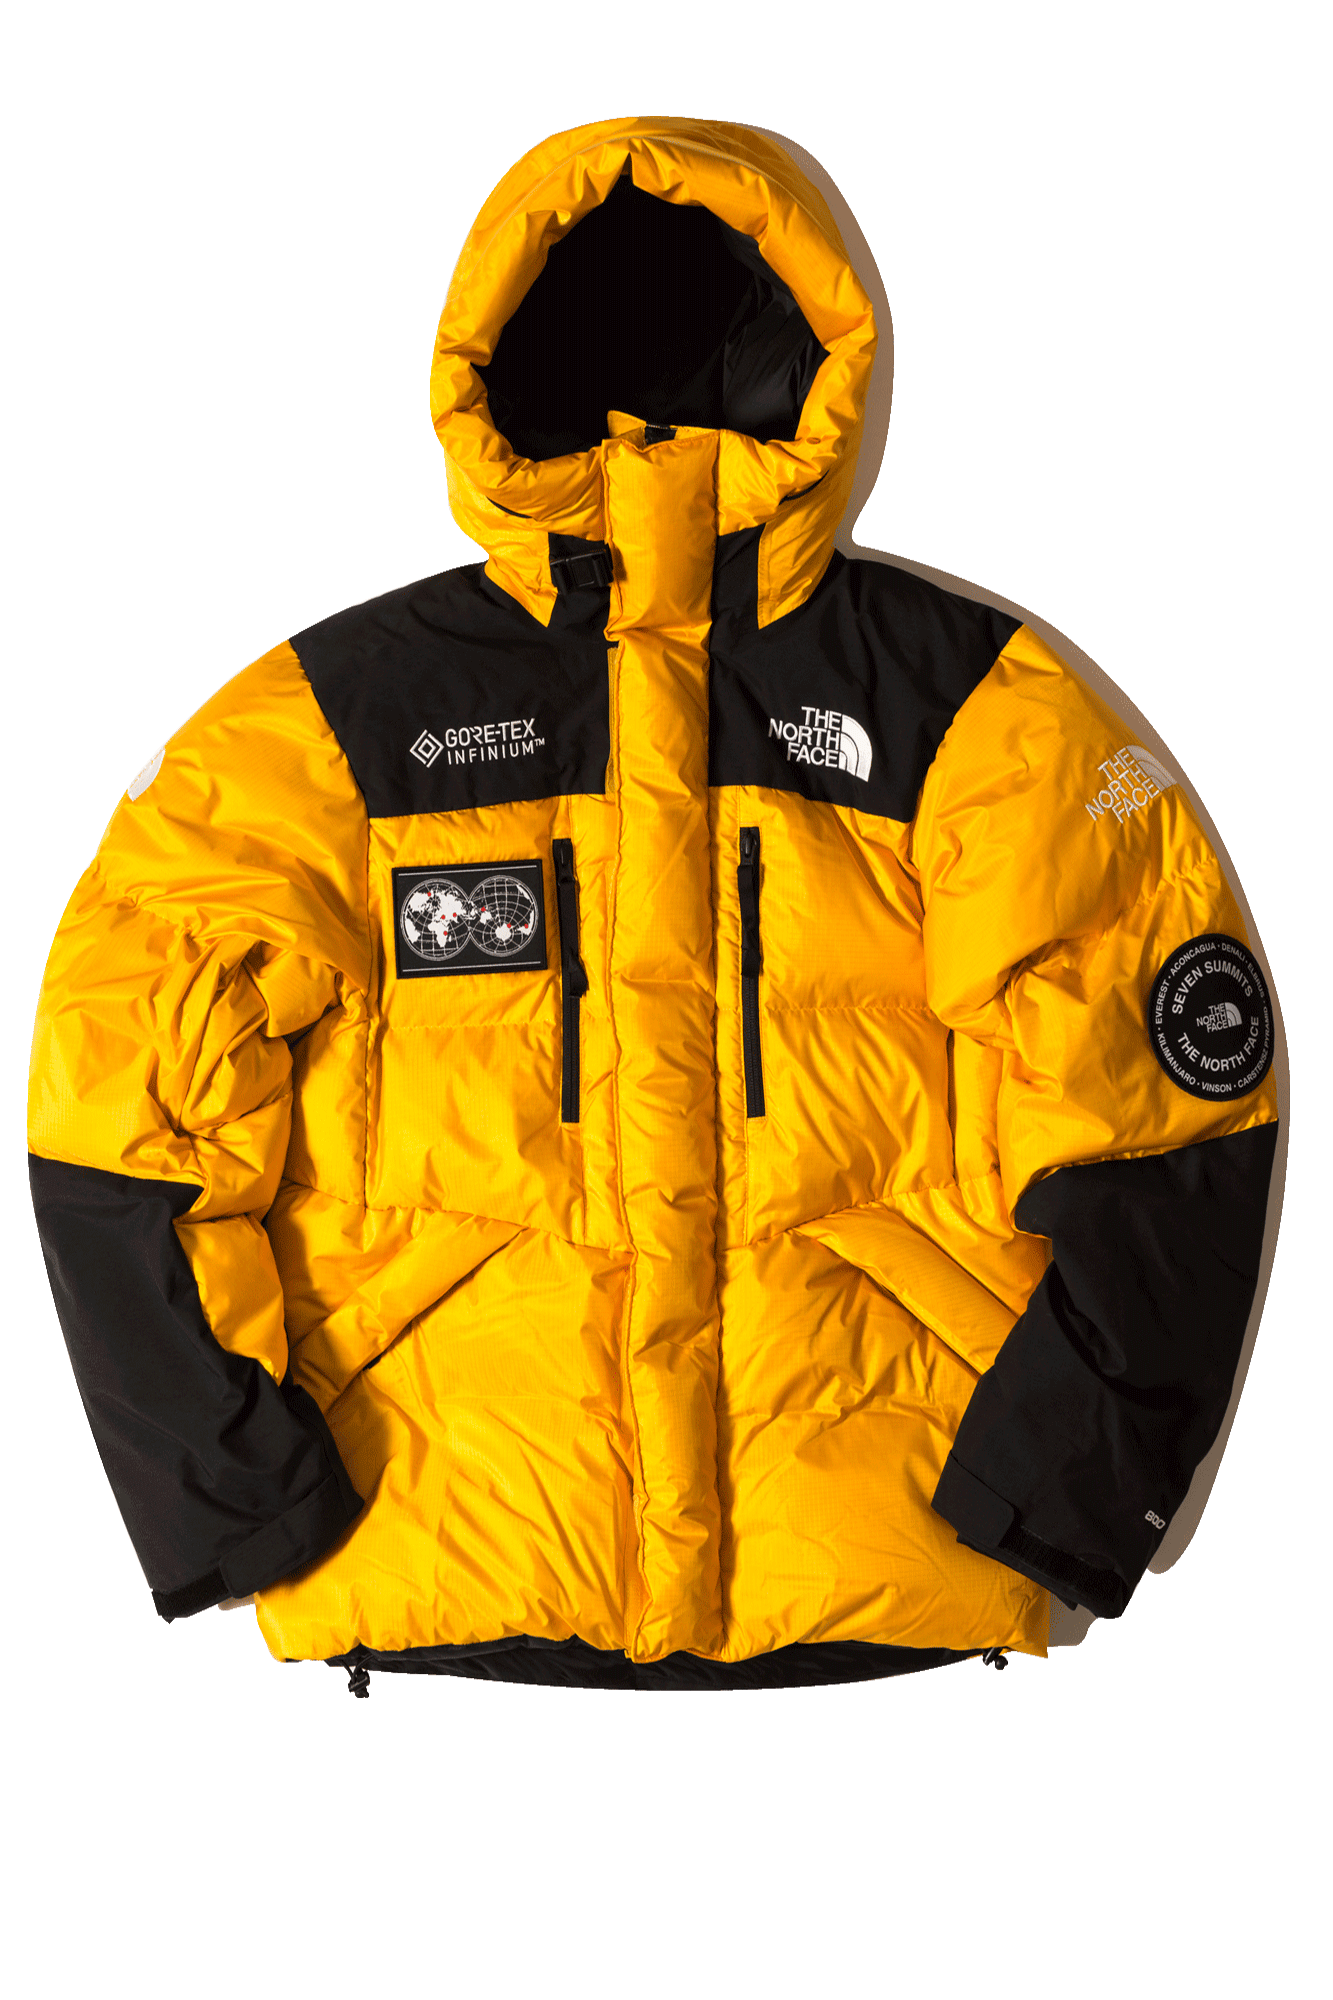 The North Face Giacche & Cappotti 7SE Himalayan Parka GTX Giallo T93MJB70M#000#70M#XS - One Block Down